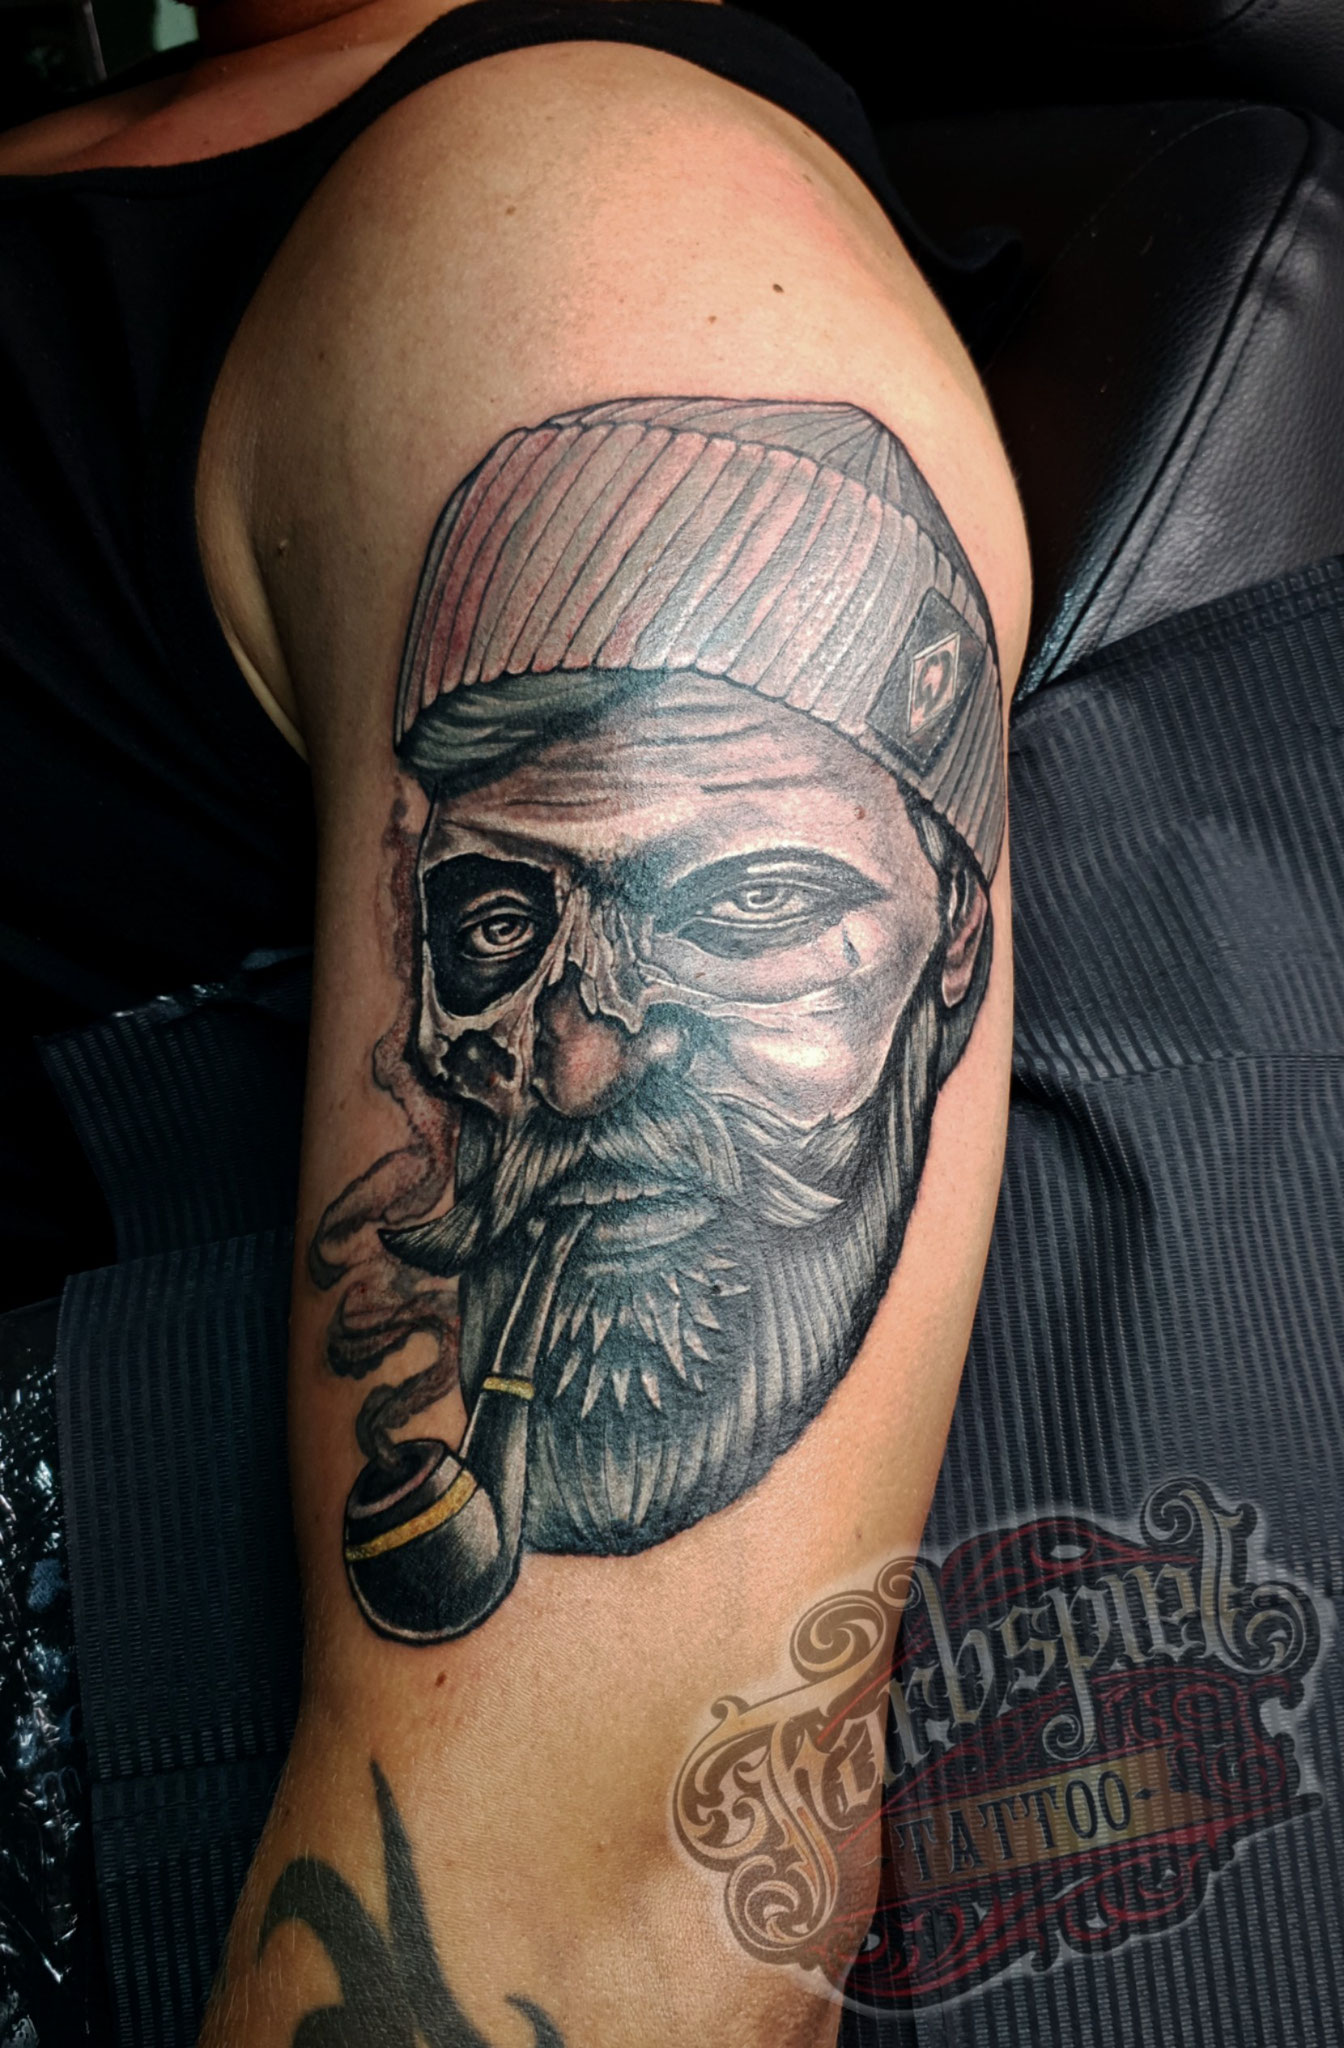 Sailor Skull tattoo